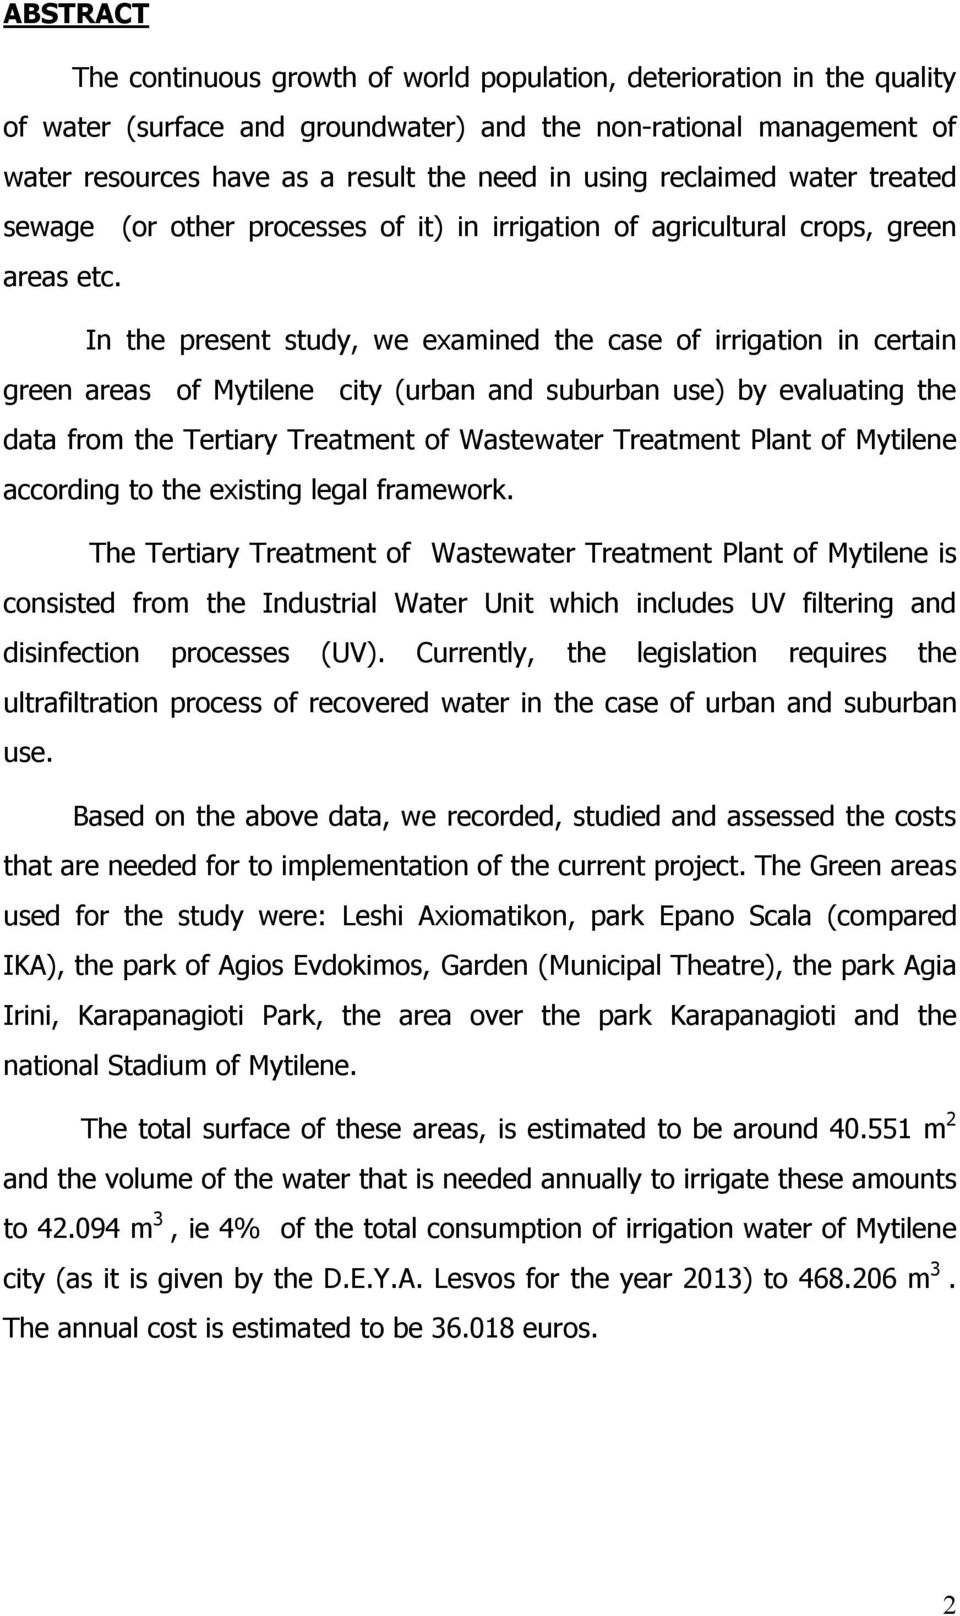 In the present study, we examined the case of irrigation in certain green areas of Mytilene city (urban and suburban use) by evaluating the data from the Tertiary Treatment of Wastewater Treatment